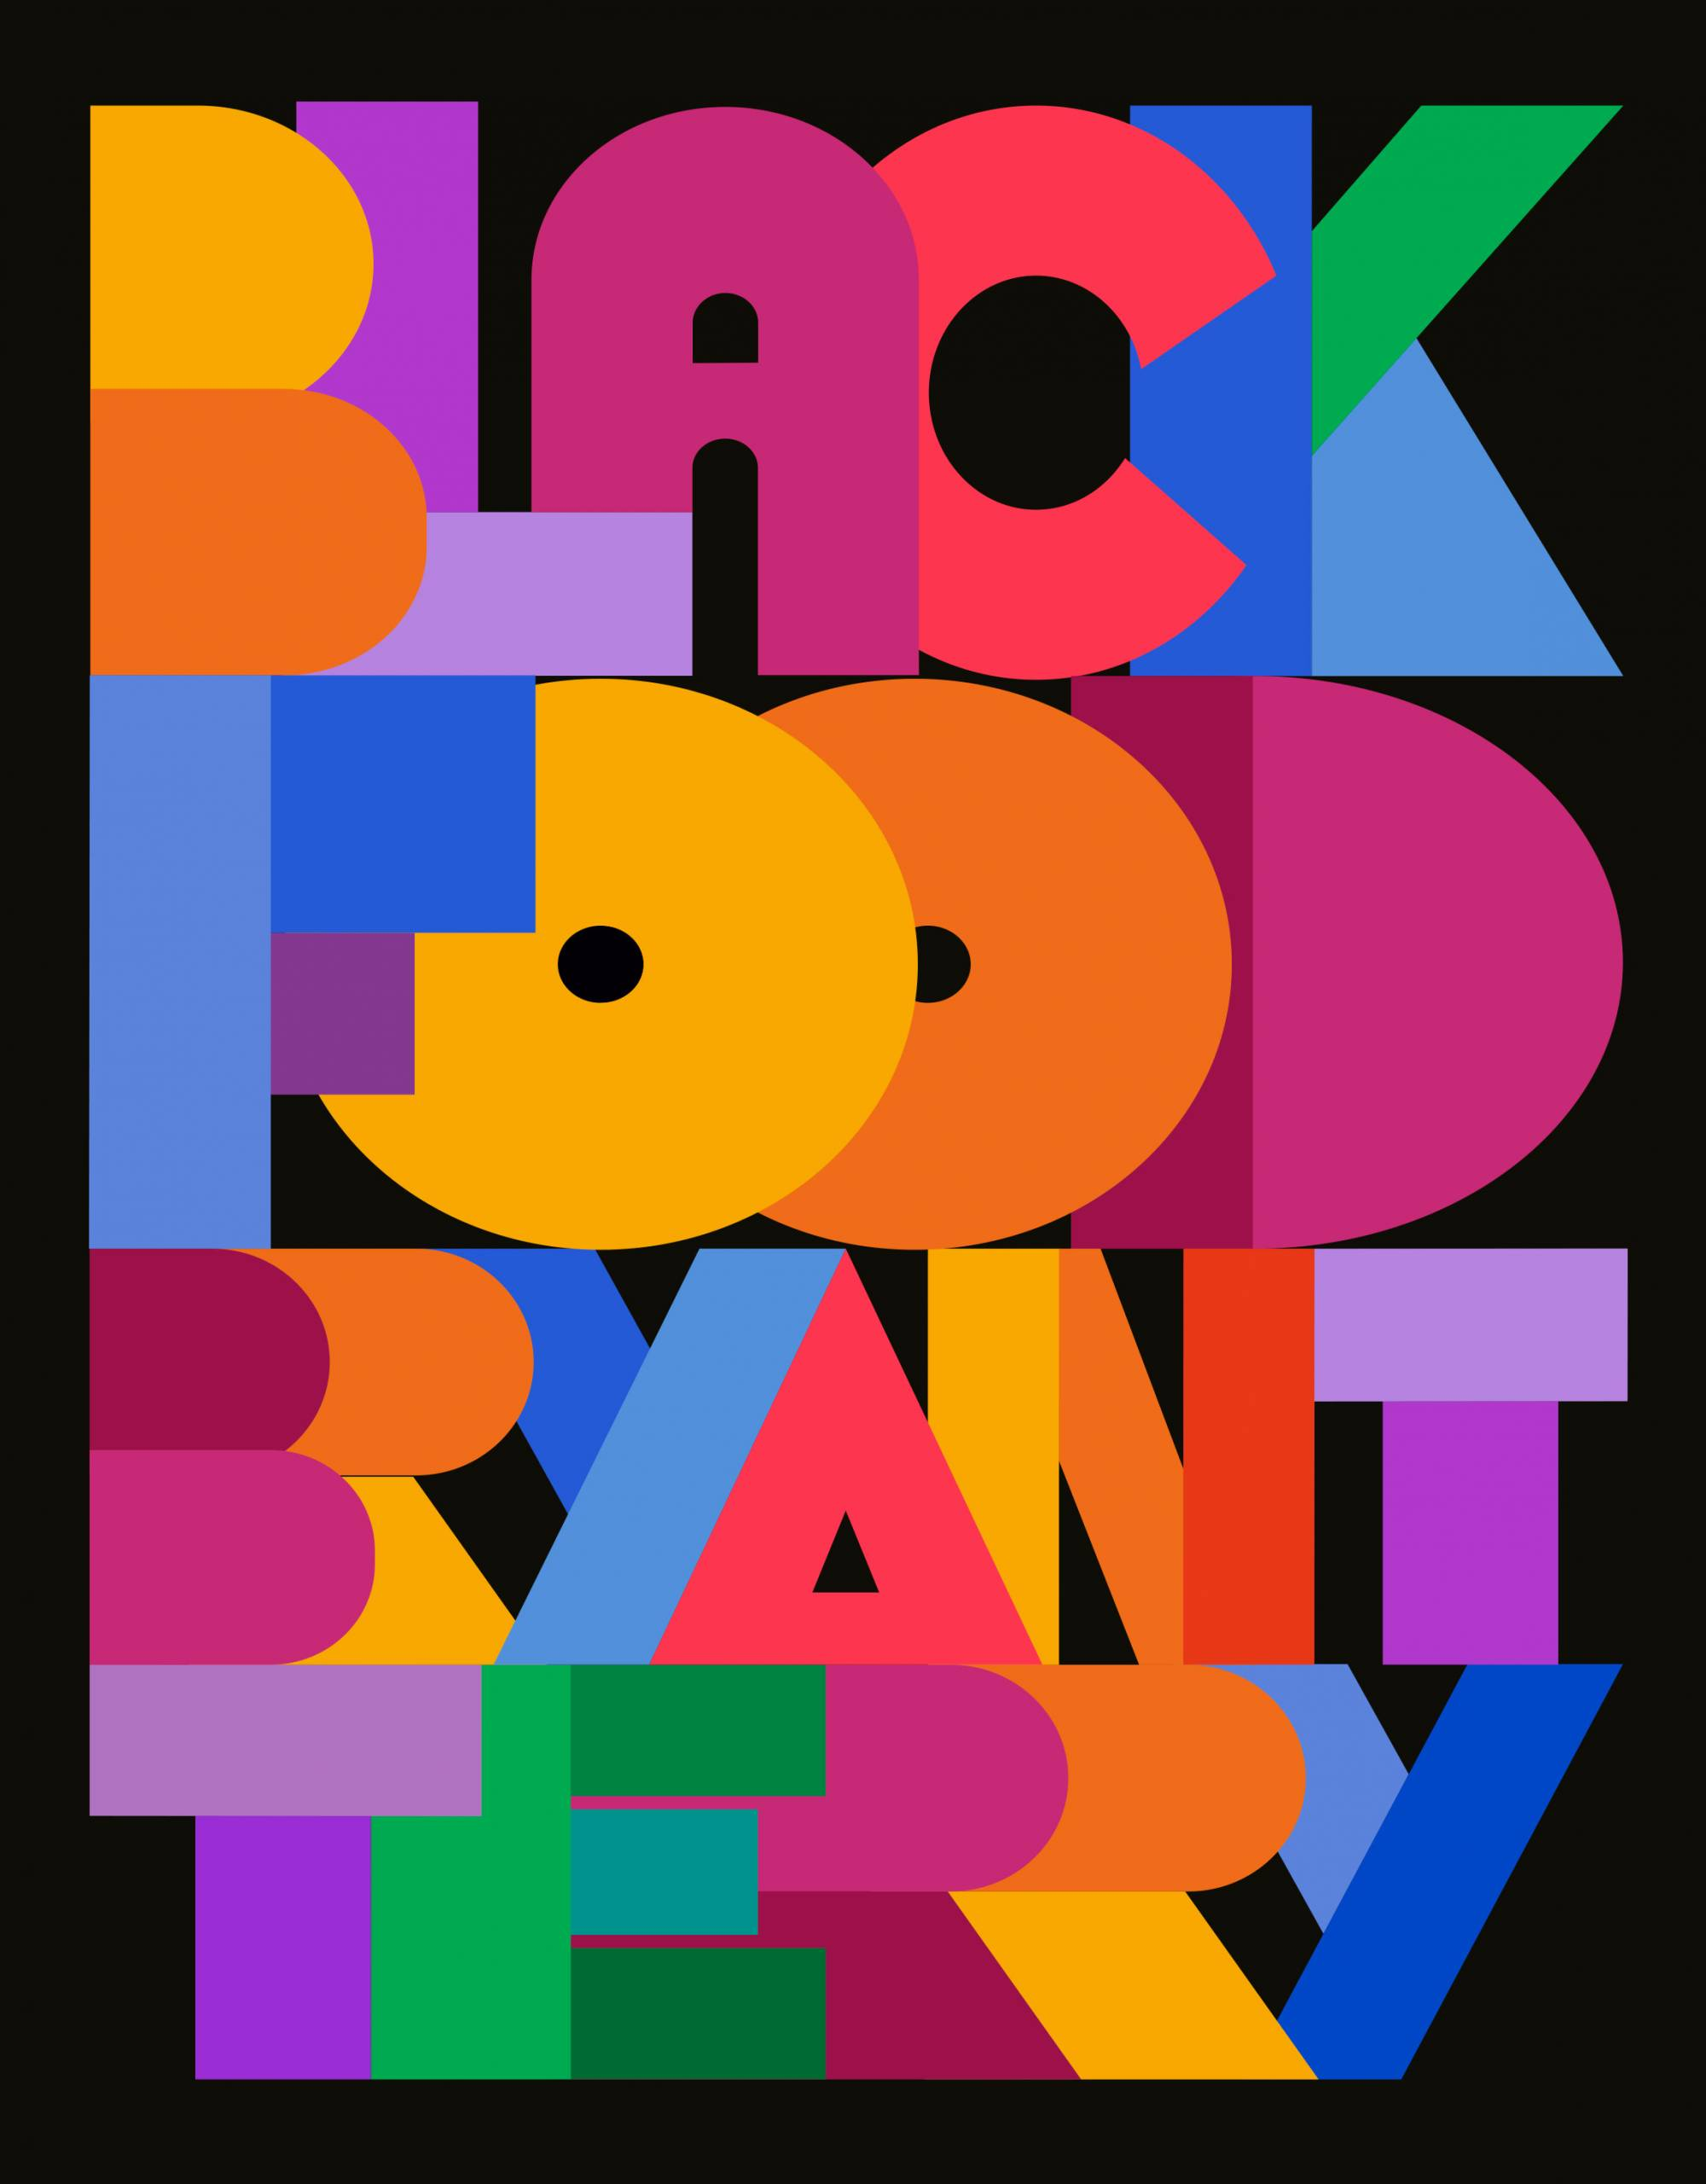 """Book cover with the words """"Black Food"""" and """"Bryant Terry"""" in colorful, blockish lettering."""